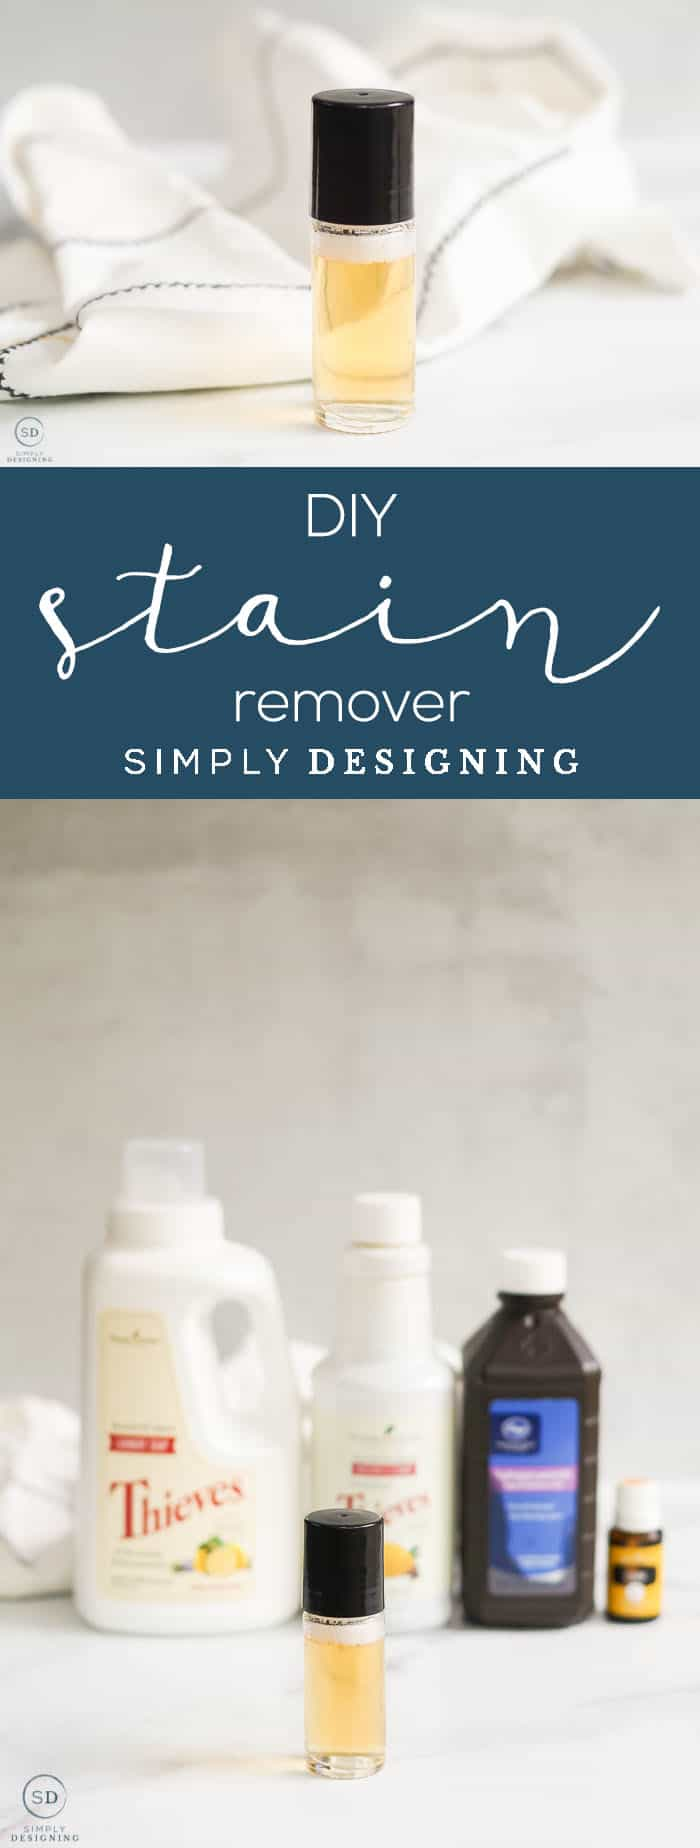 DIY Stain Remover - homemade all-natural DIY Stain Remover recipe that can help you get out your worst clothing stains